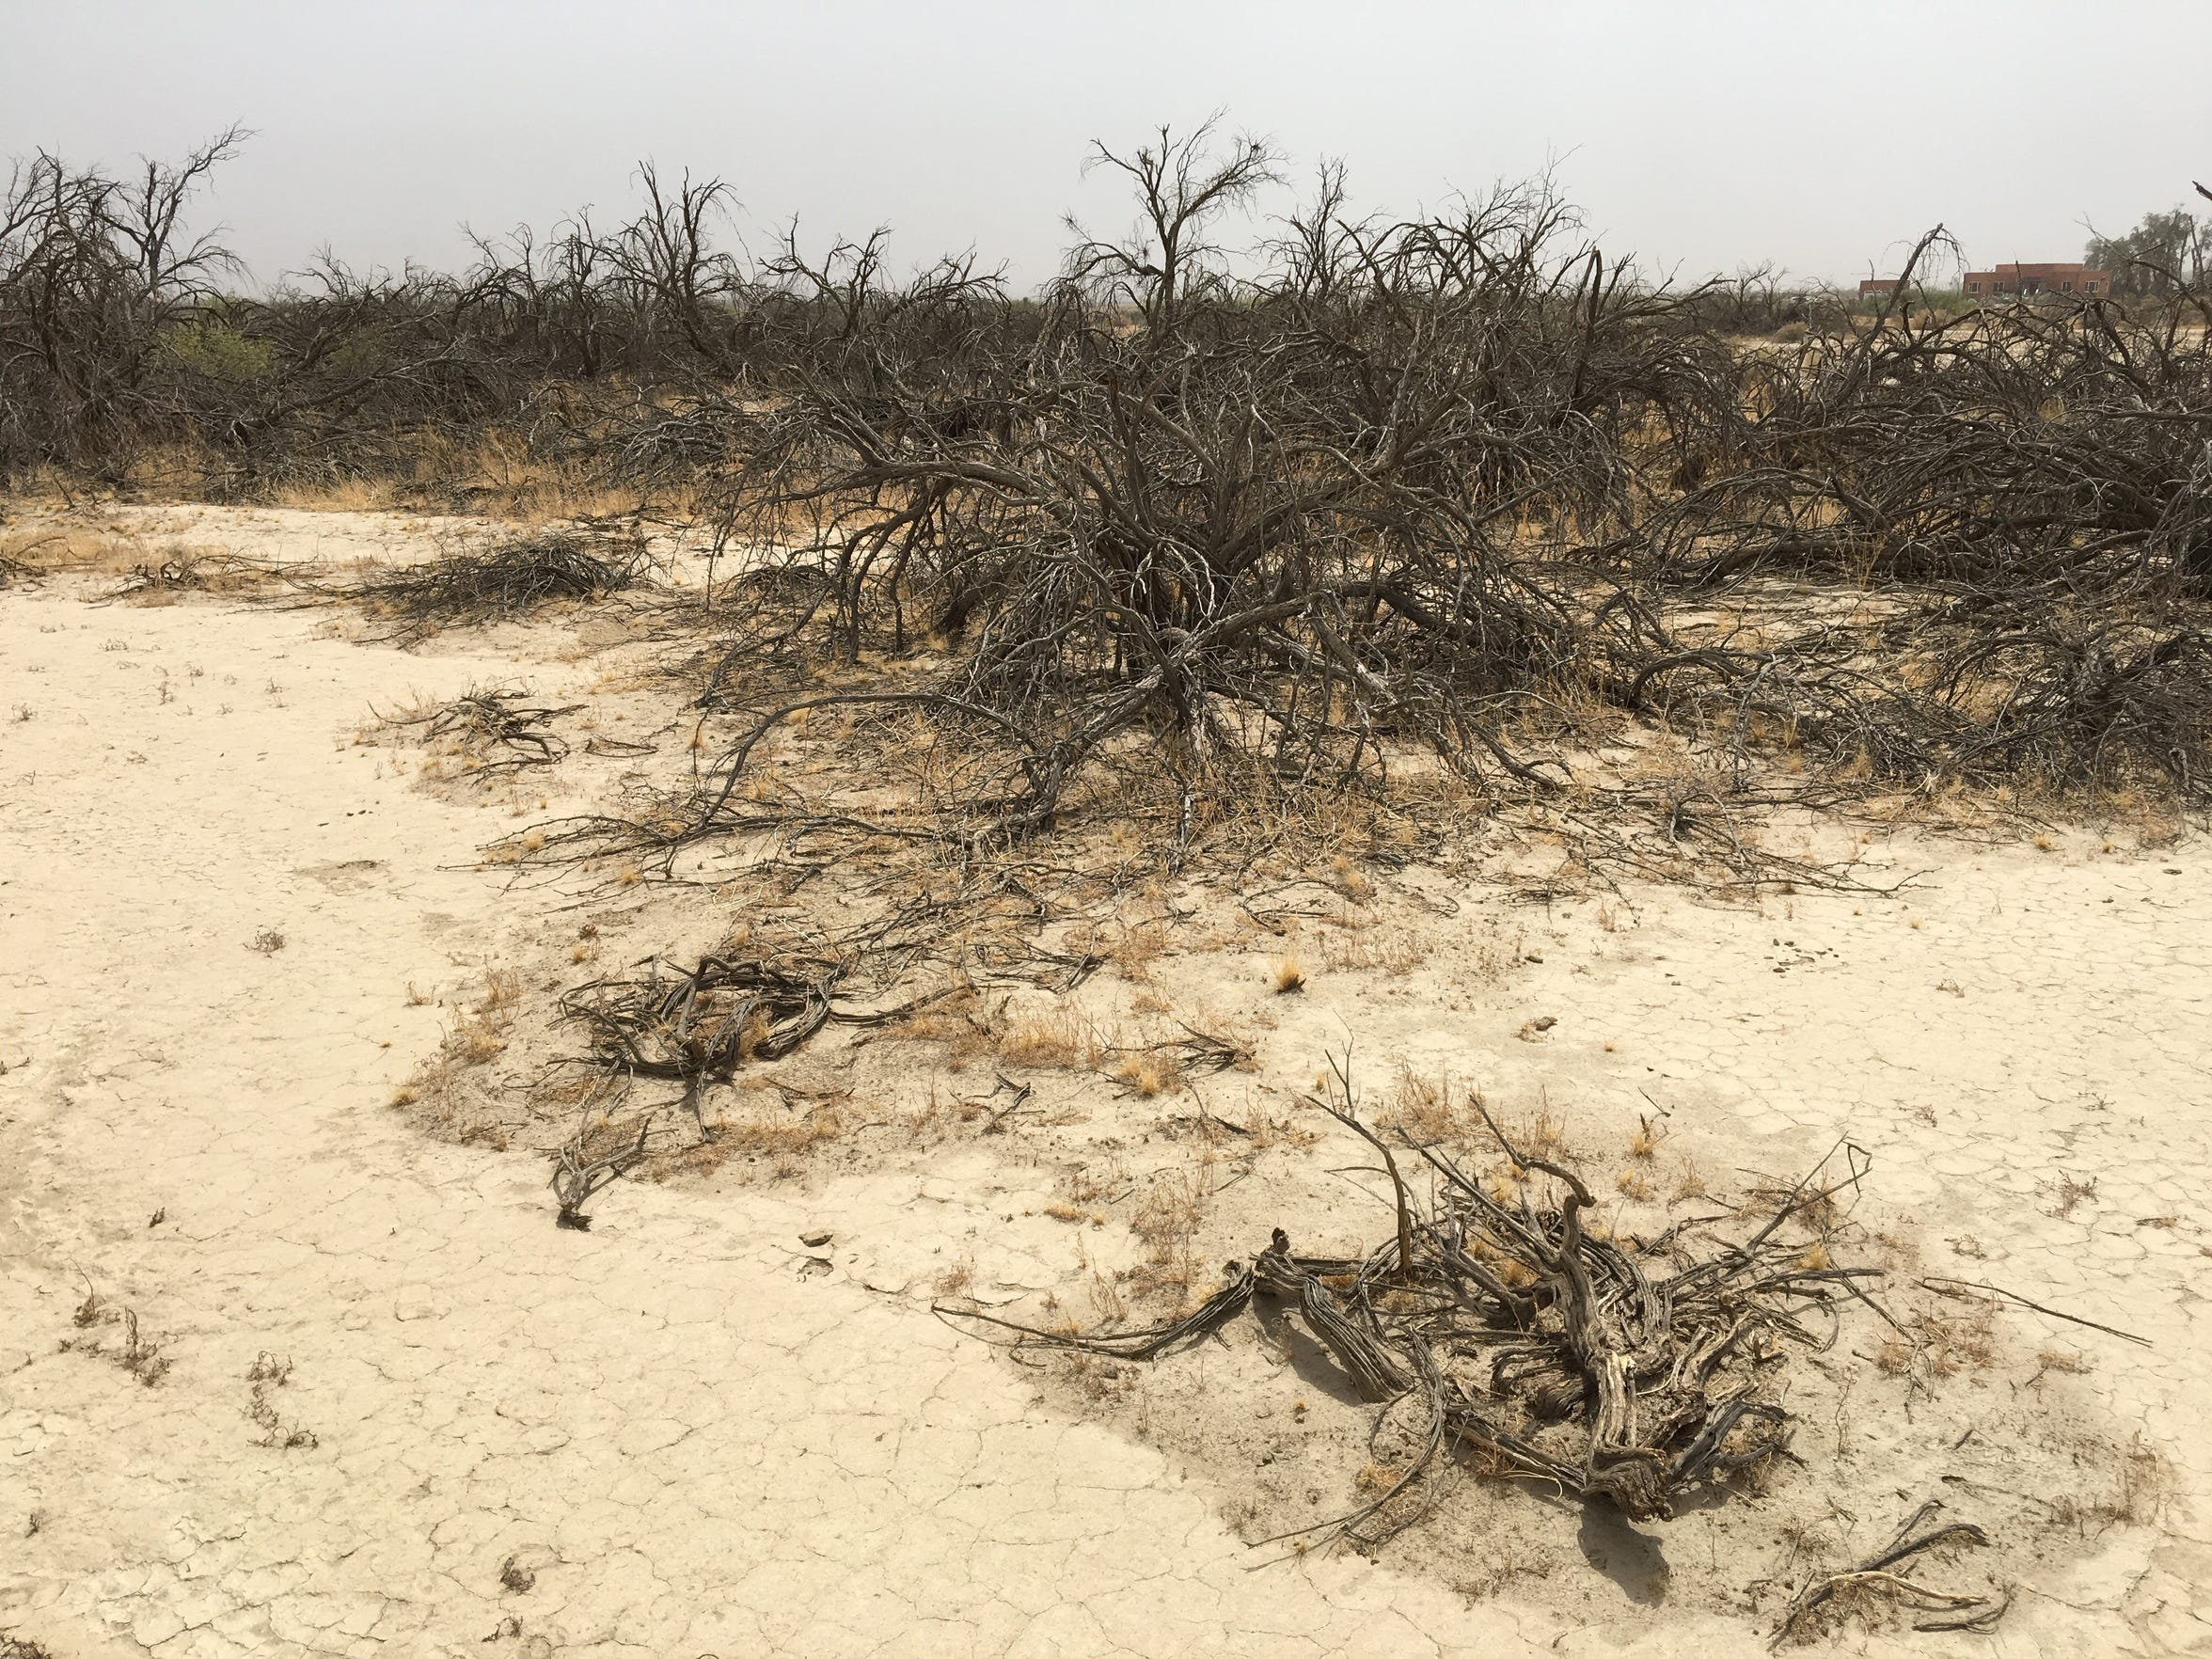 In the desert next to Borrego Springs, many mesquite trees have died because their roots no longer reach the falling water table.